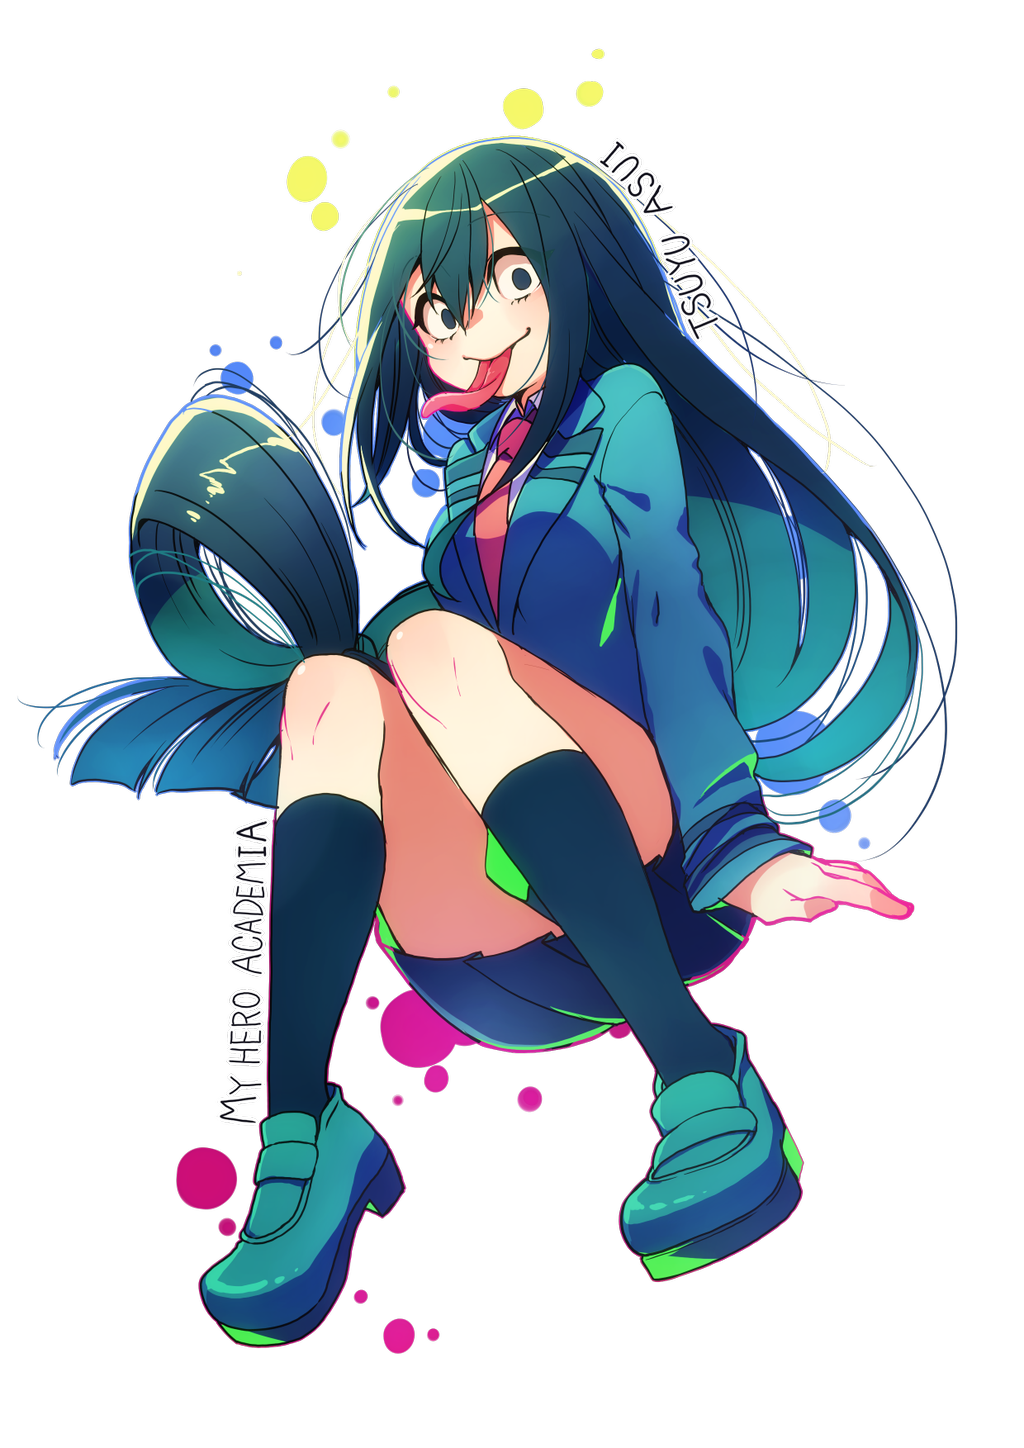 1girl aqua_footwear aqua_jacket asui_tsuyu bangs black_eyes black_hair black_legwear black_skirt boku_no_hero_academia character_name collared_shirt copyright_name eyebrows_visible_through_hair full_body hair_between_eyes hair_rings highres jacket loafers long_hair long_sleeves long_tongue looking_at_viewer low-tied_long_hair necktie pleated_skirt red_neckwear school_uniform shirt shoes skirt smile socks solo tongue tongue_out transparent_background u.a._school_uniform white_shirt xxhachi_coxx